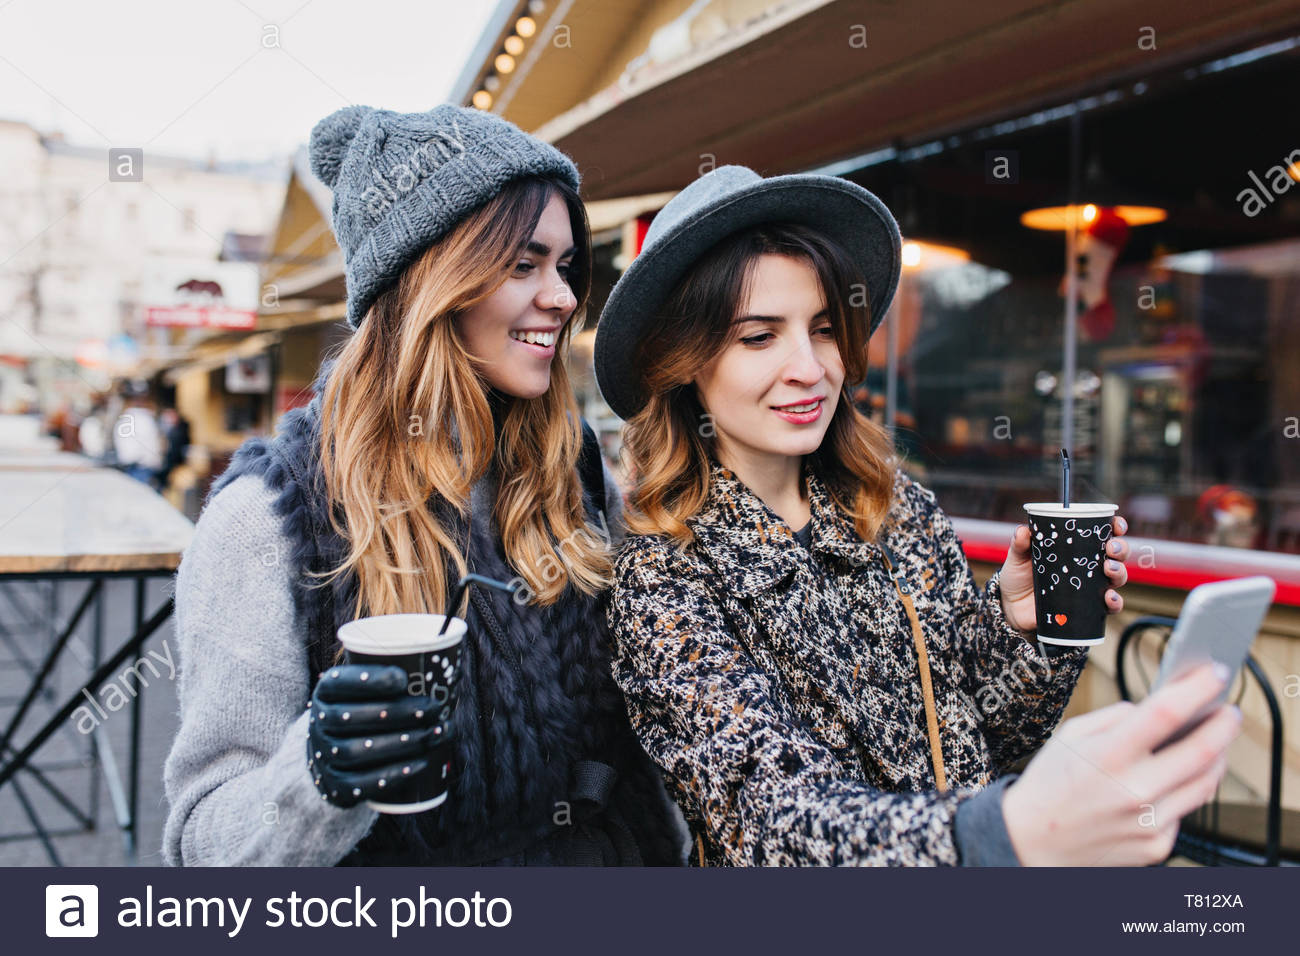 Selfie portrait of joyful fashionable girls having fun on sunny street in city. Stylish look, having fun, travelling with friends, smiling, expressing true positive emotions Stock Photo